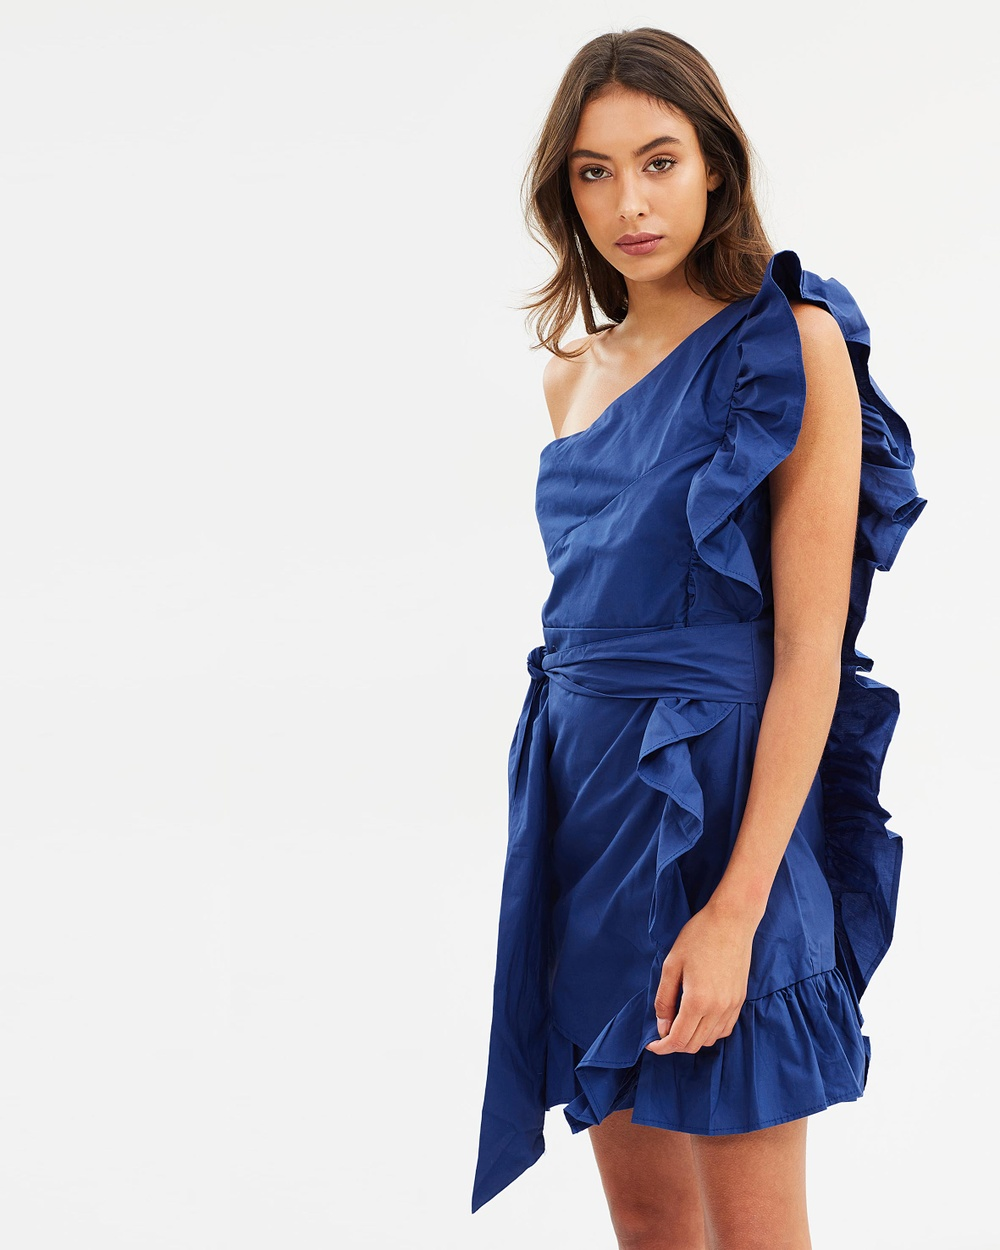 Lioness Sliding Doors Ruffle Dress Dresses Blue Sliding Doors Ruffle Dress